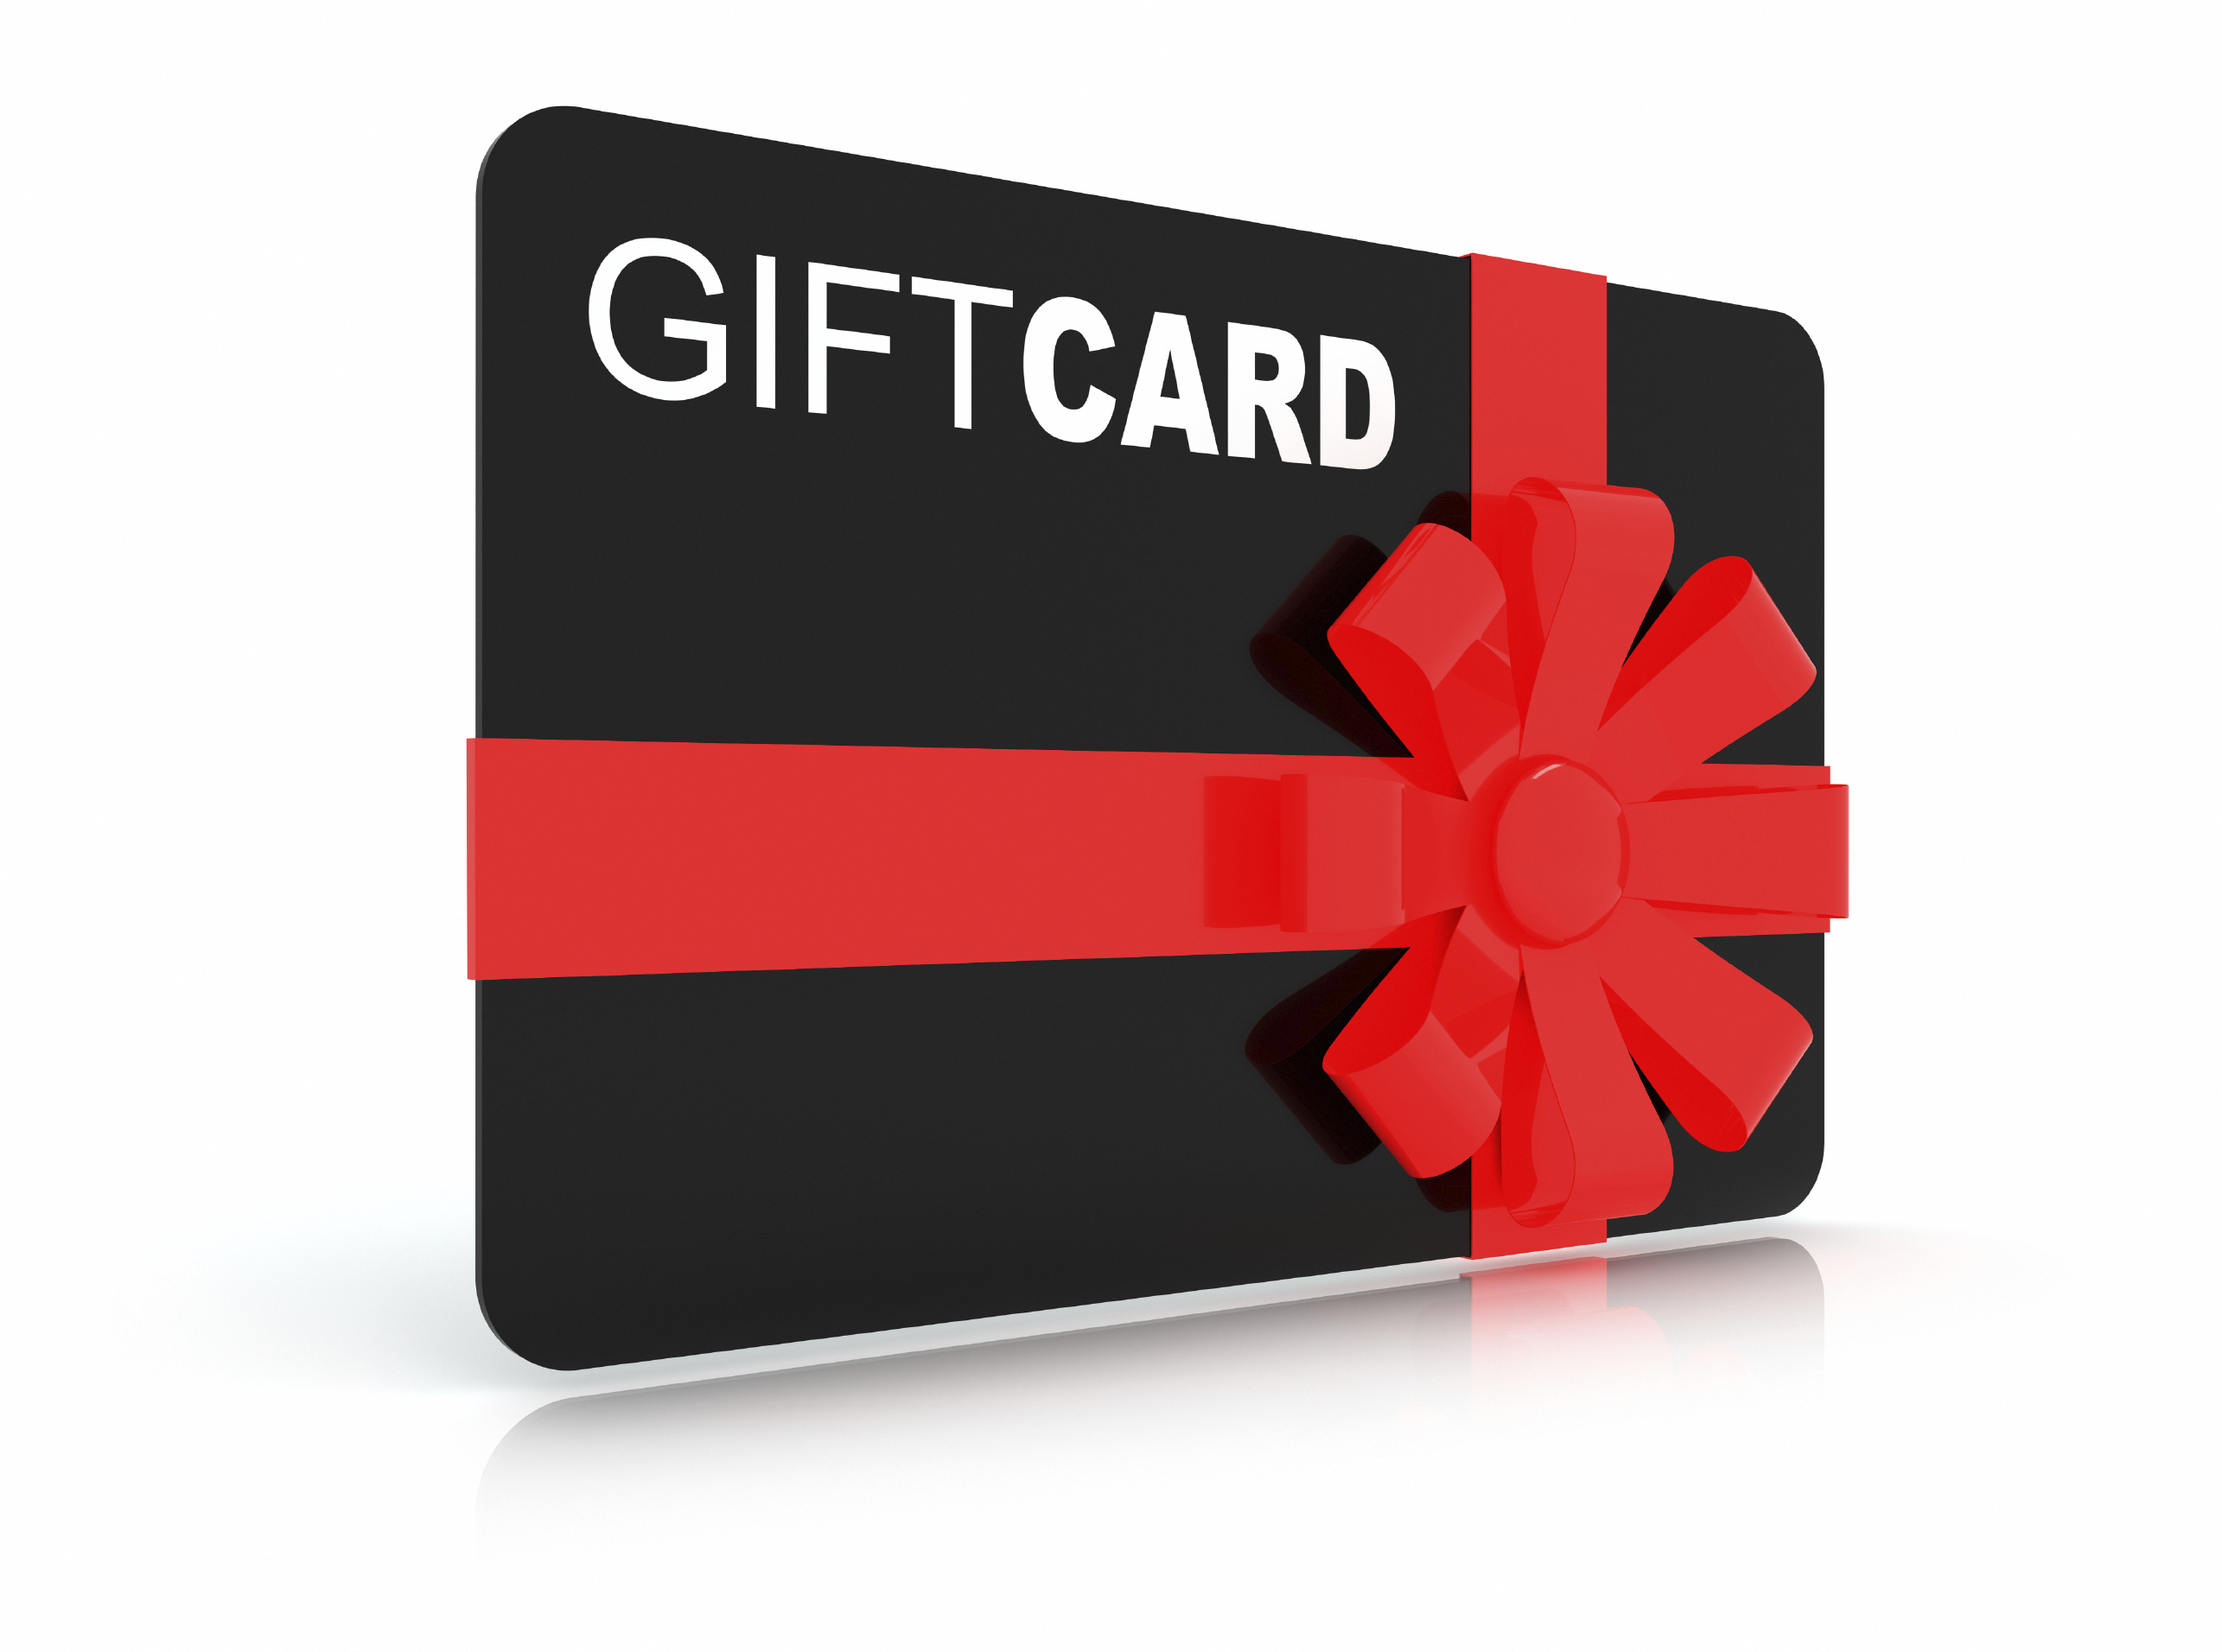 Free Gift Card Cliparts, Download Free Clip Art, Free Clip Art on.